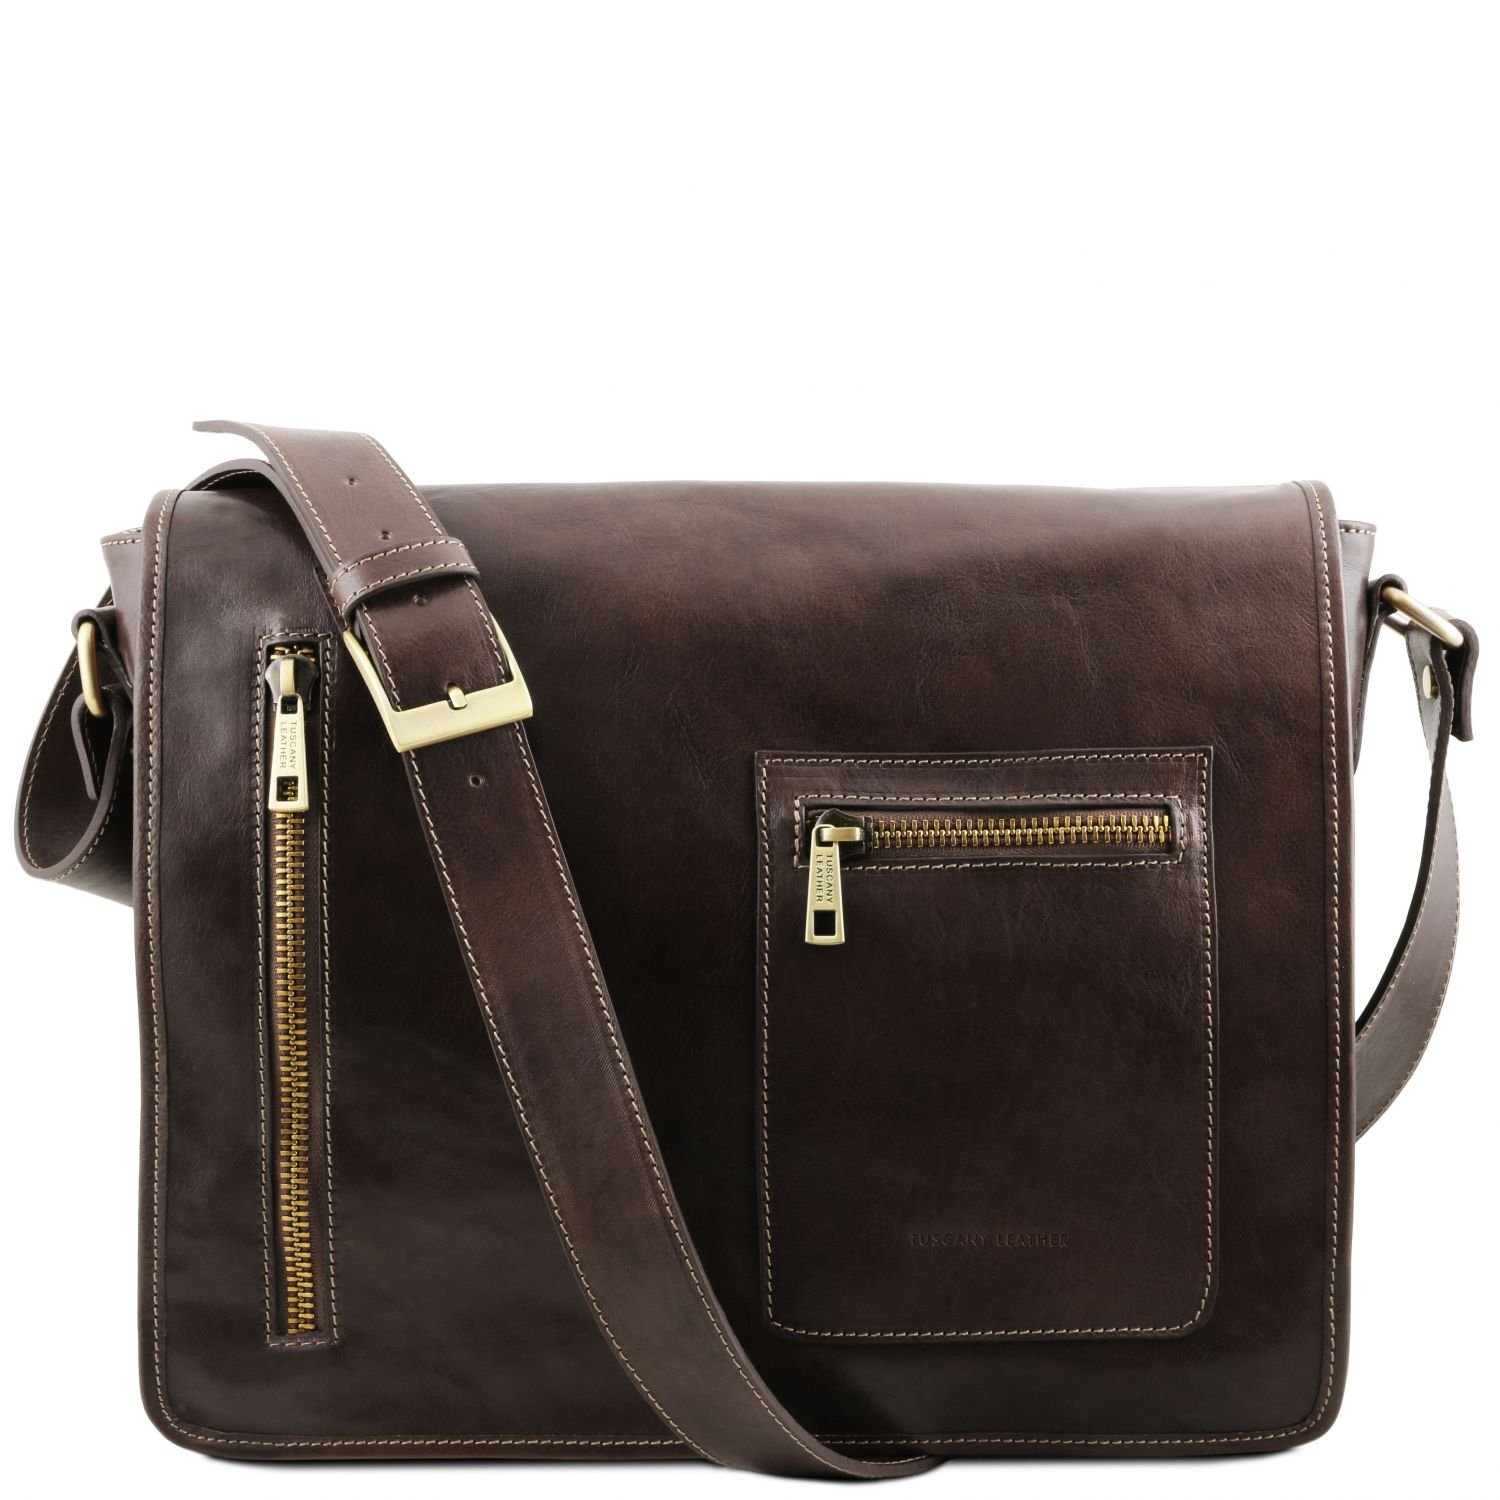 Tuscany Leather TL Messenger Leather double compartment laptop shoulder bag Dark Brown